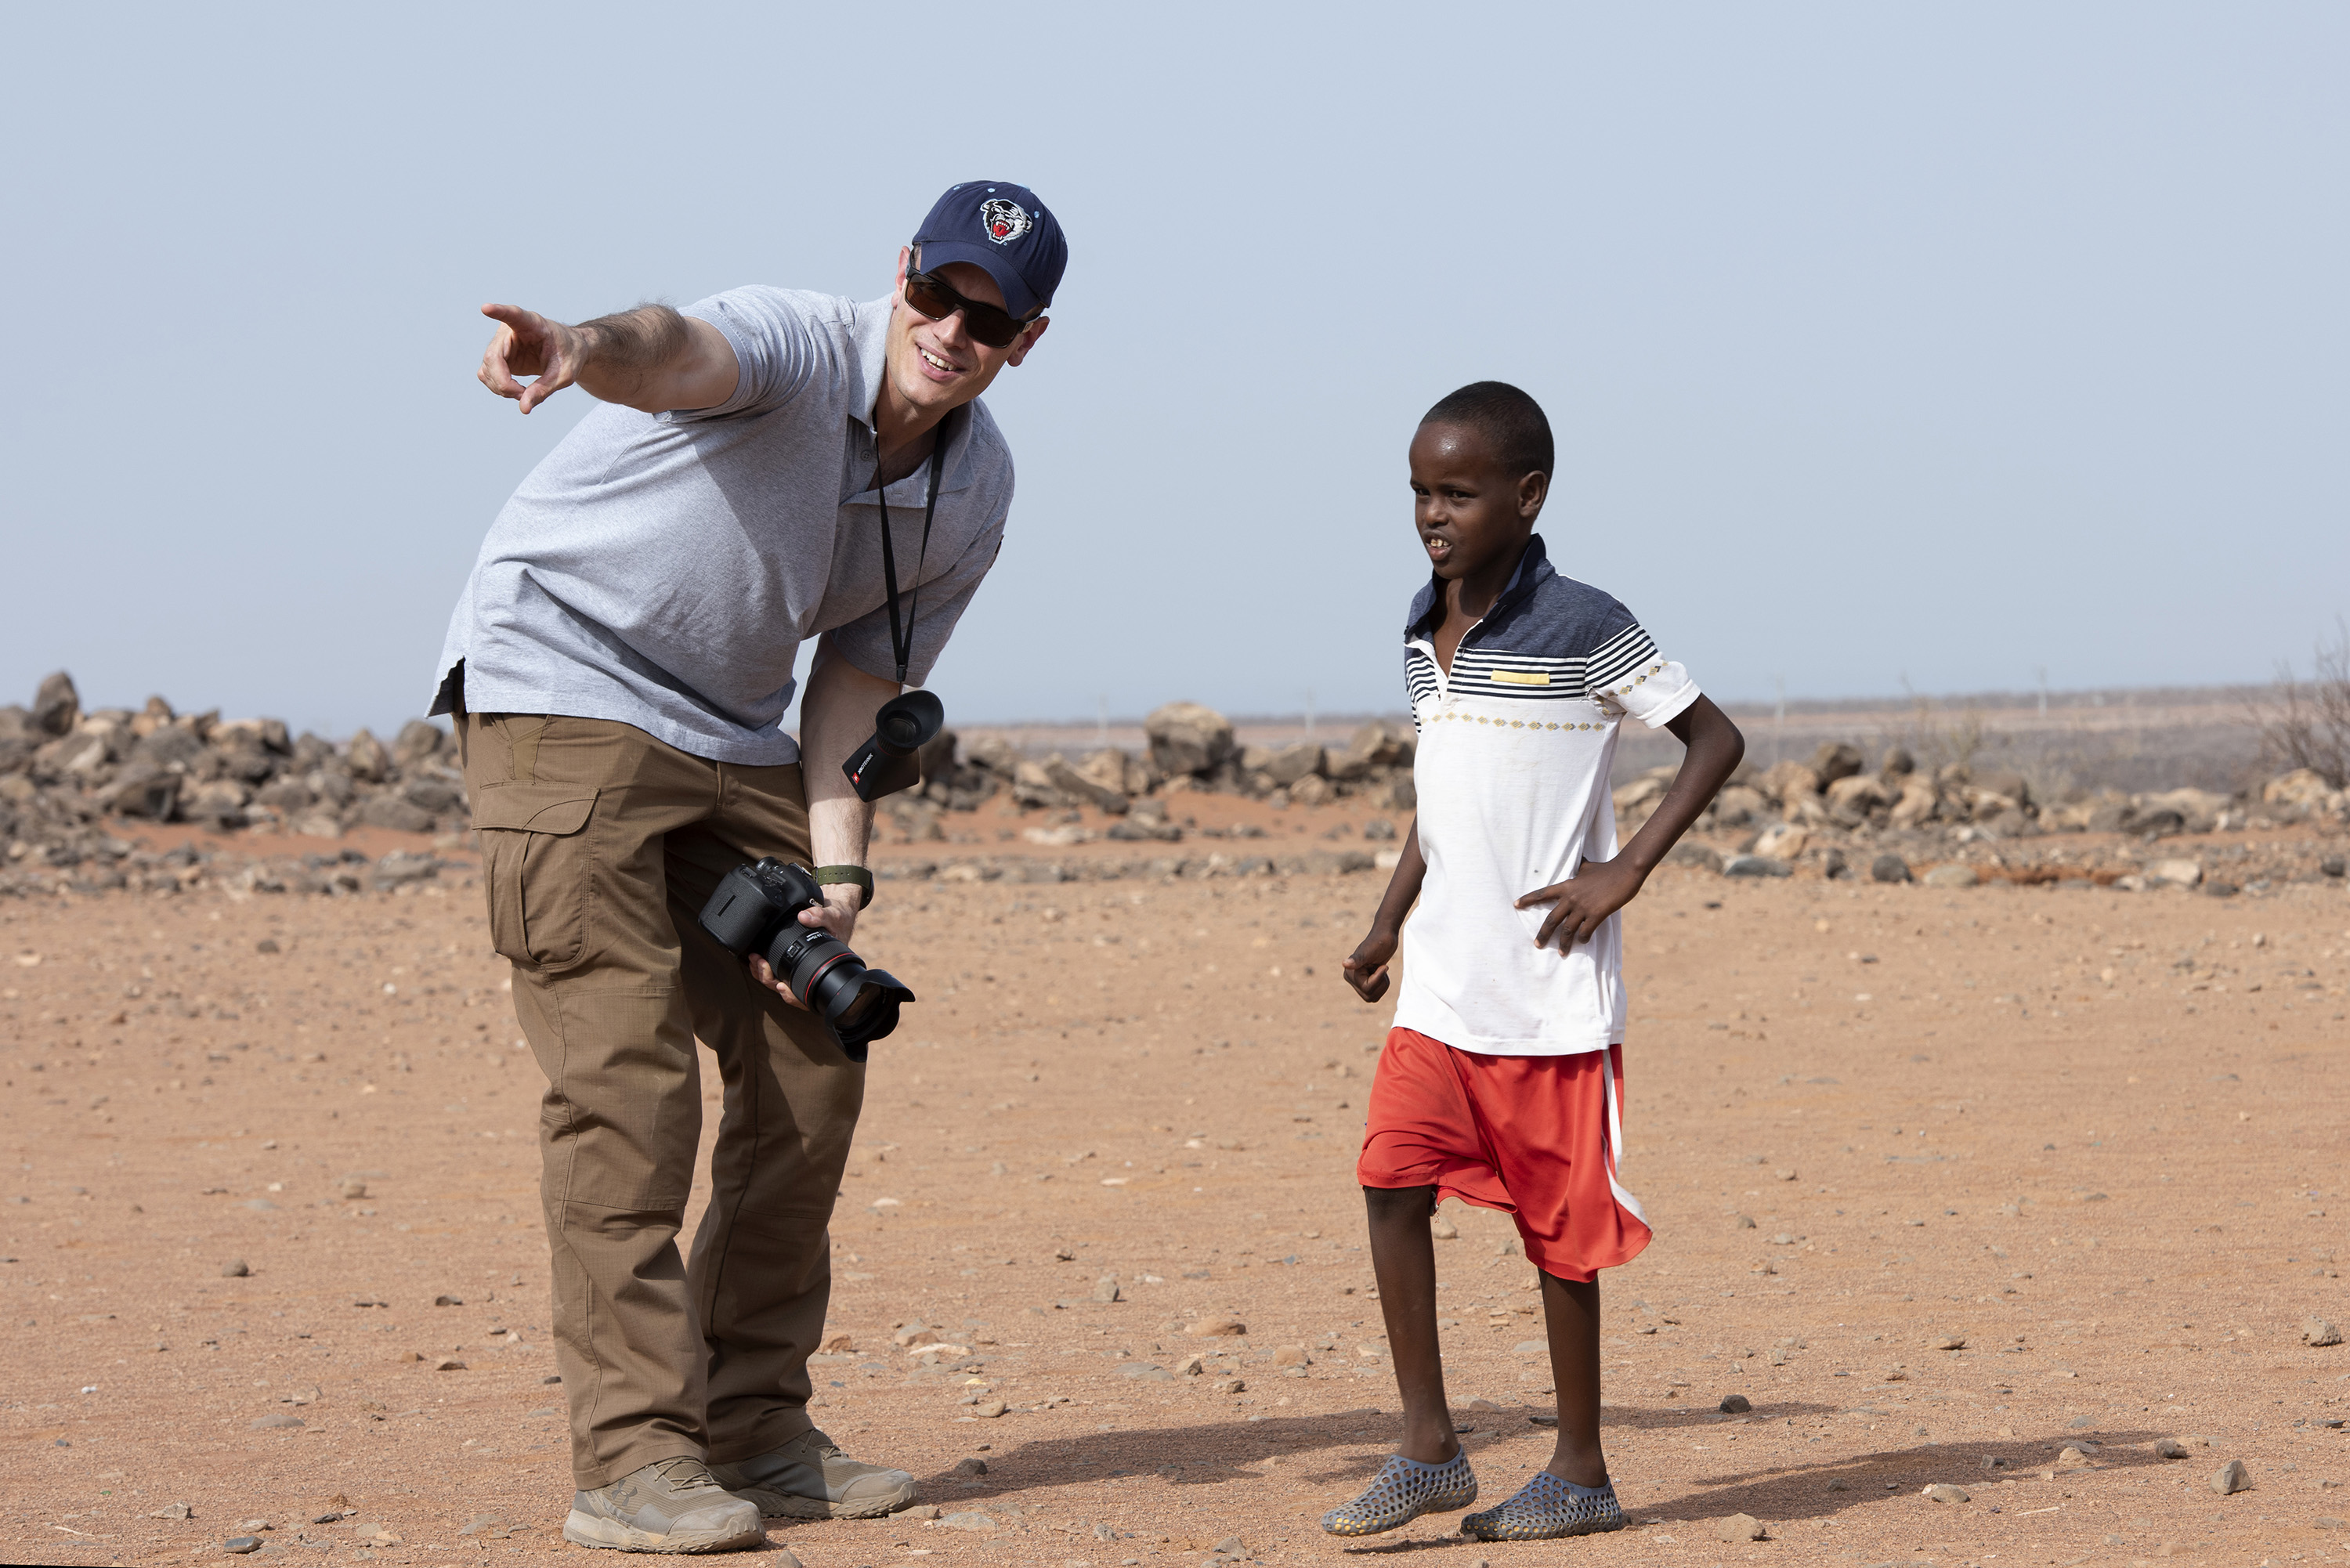 U.S. Air Force Master Sgt. Andrew Sinclair, broadcaster, Combined Joint Task Force - Horn of Africa, public affairs, speaks with a Djiboutian child outside of Chebelley village, Djibouti, Aug. 3, 2018. Sinclair was there to document a soccer game as part of a community engagement event organized by the 404th Civil Affairs Battalion. (U.S. Air National Guard photo by Master Sgt. Sarah Mattison)